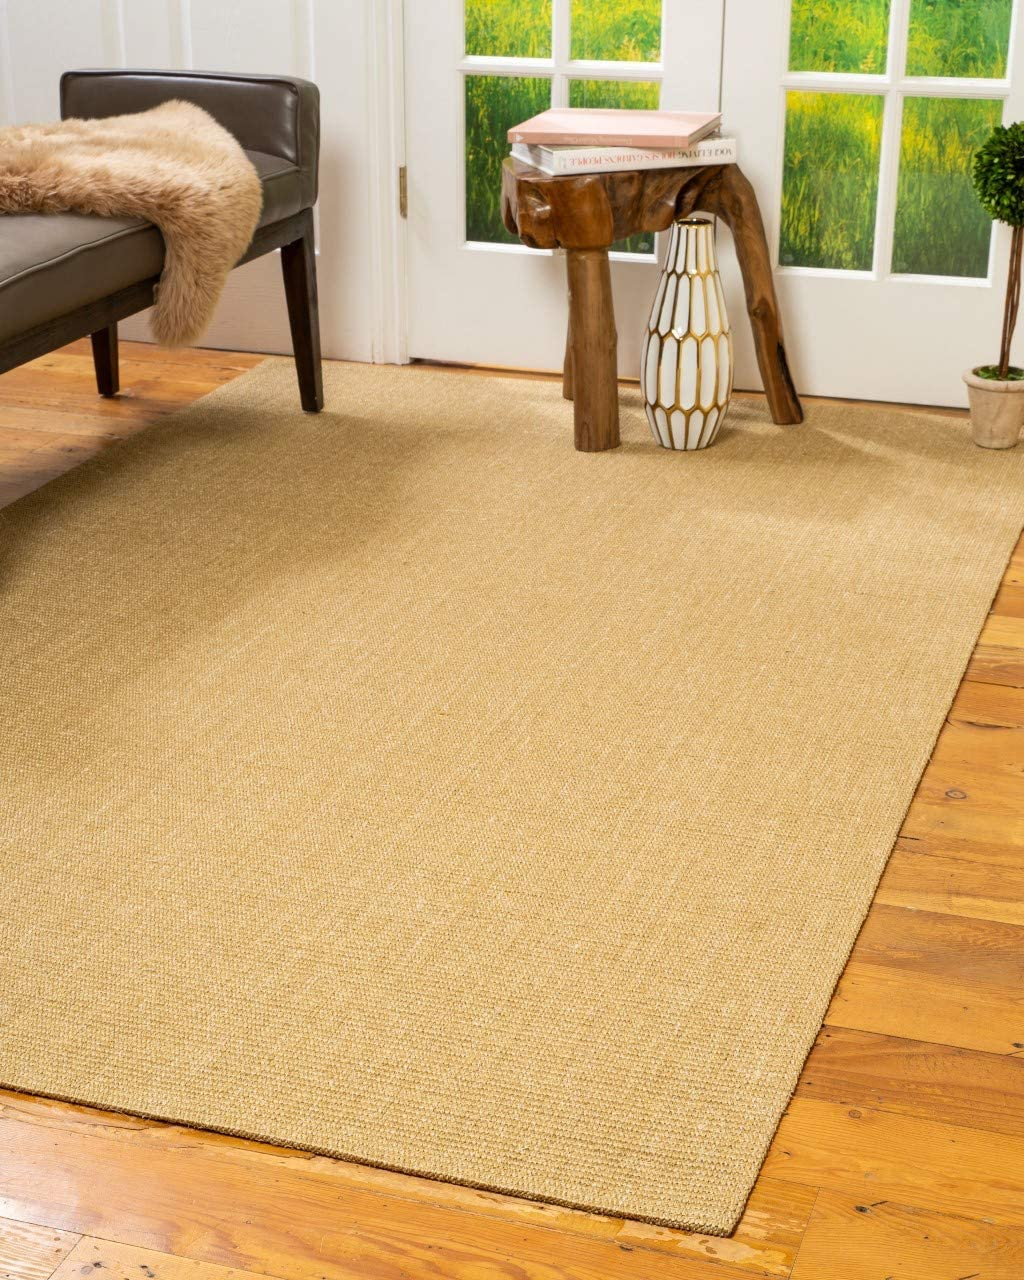 Natural Area Rugs Natural Fiber Tribeca Beige Sisal Rug, 8 x 10